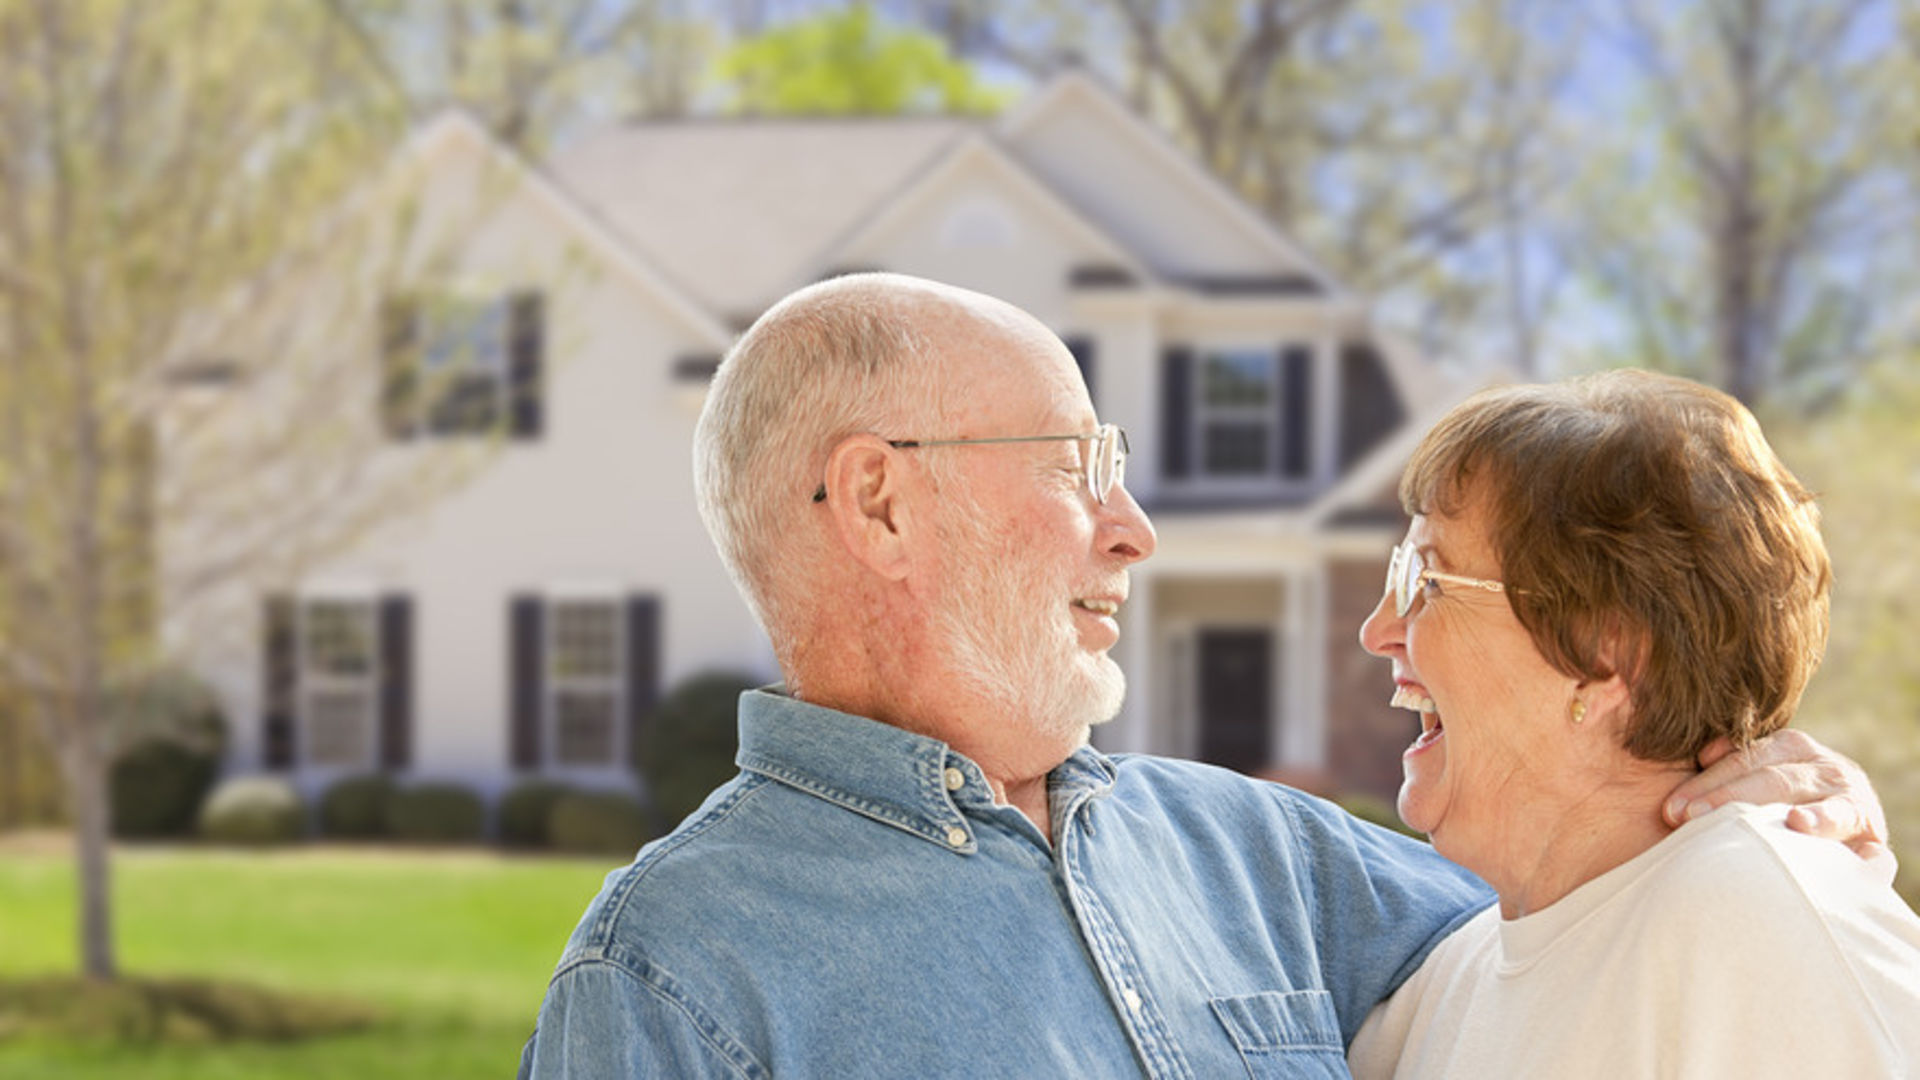 5 MAJOR MISTAKES THAT RETIREES MAKE WITH REAL ESTATE